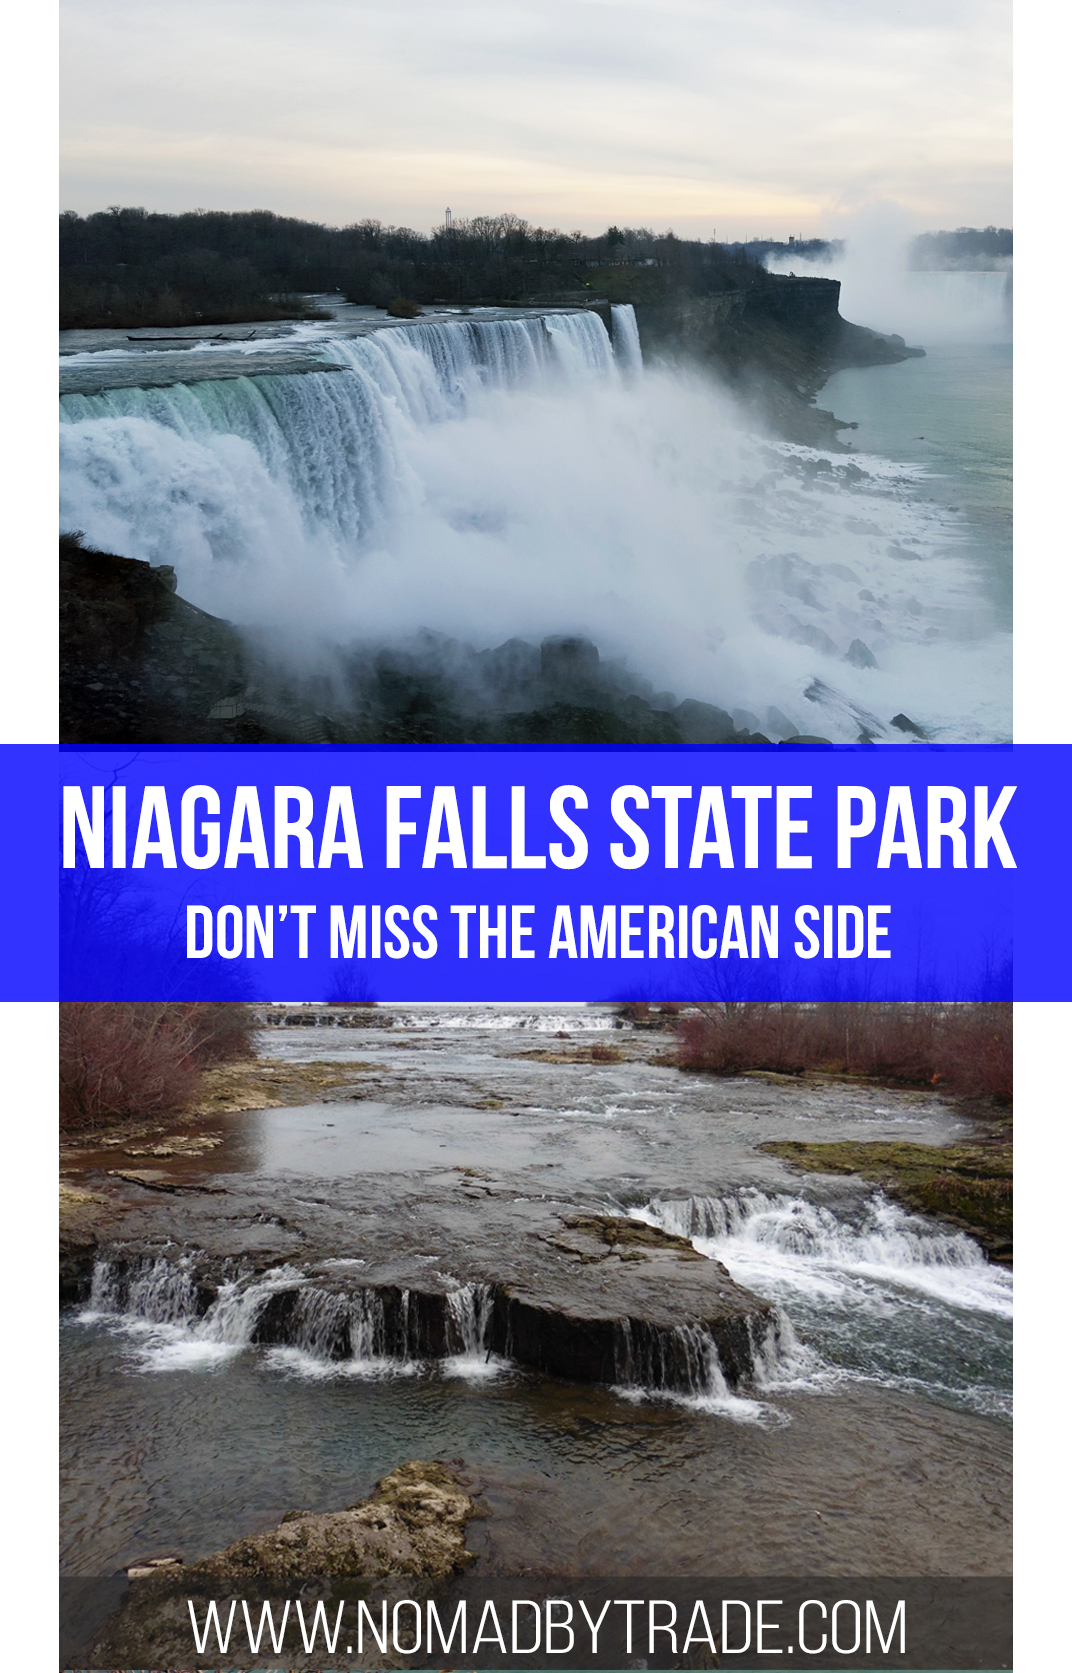 Don't miss a chance to visit Niagara Falls State Park on the New York side of the river to get up close to the famous waterfalls.